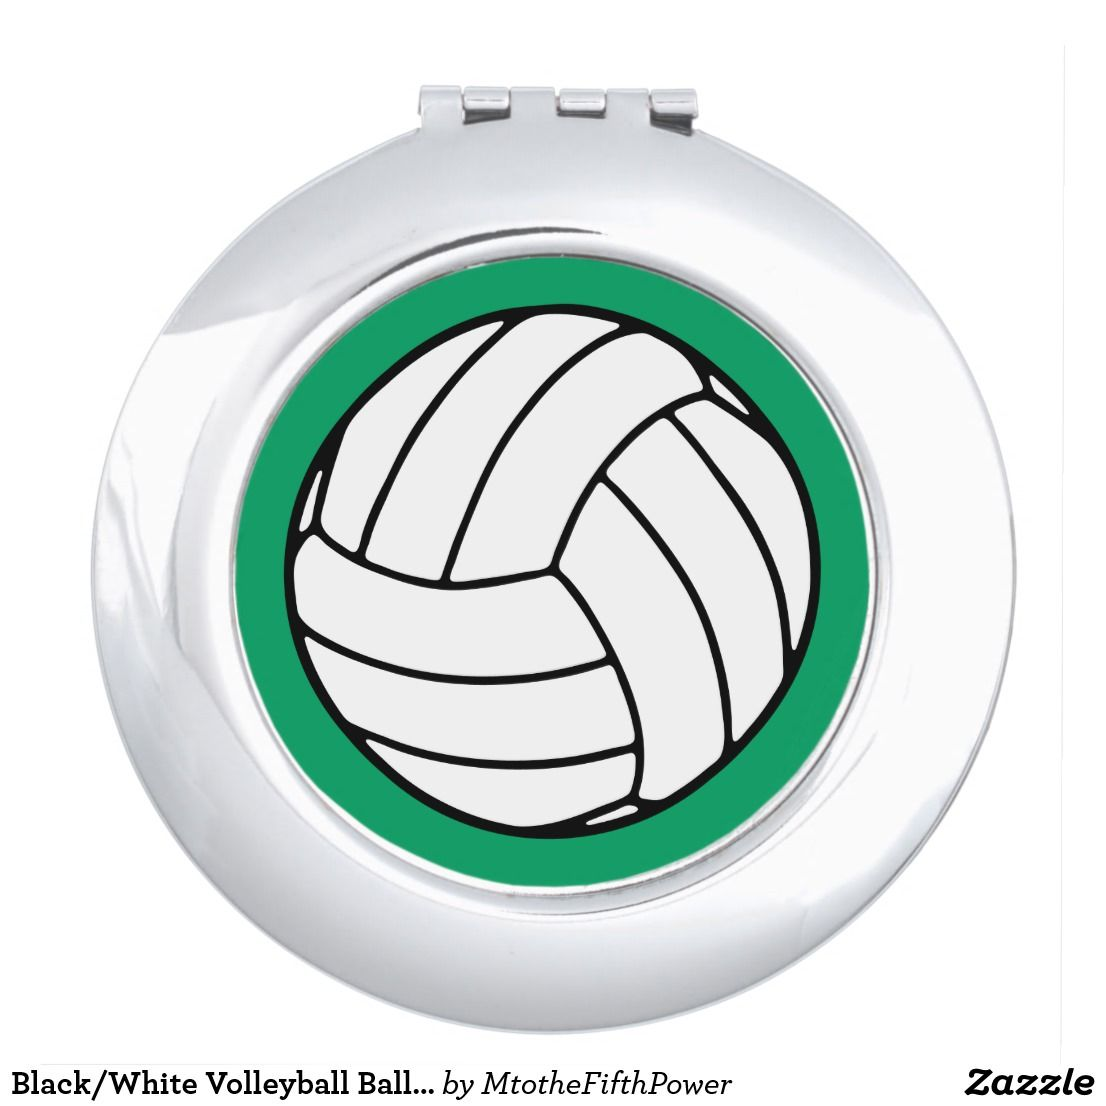 Black White Volleyball Ball On Shamrock Green Compact Mirror Zazzle Com Blue Vanity Compact Mirror Black Mirror